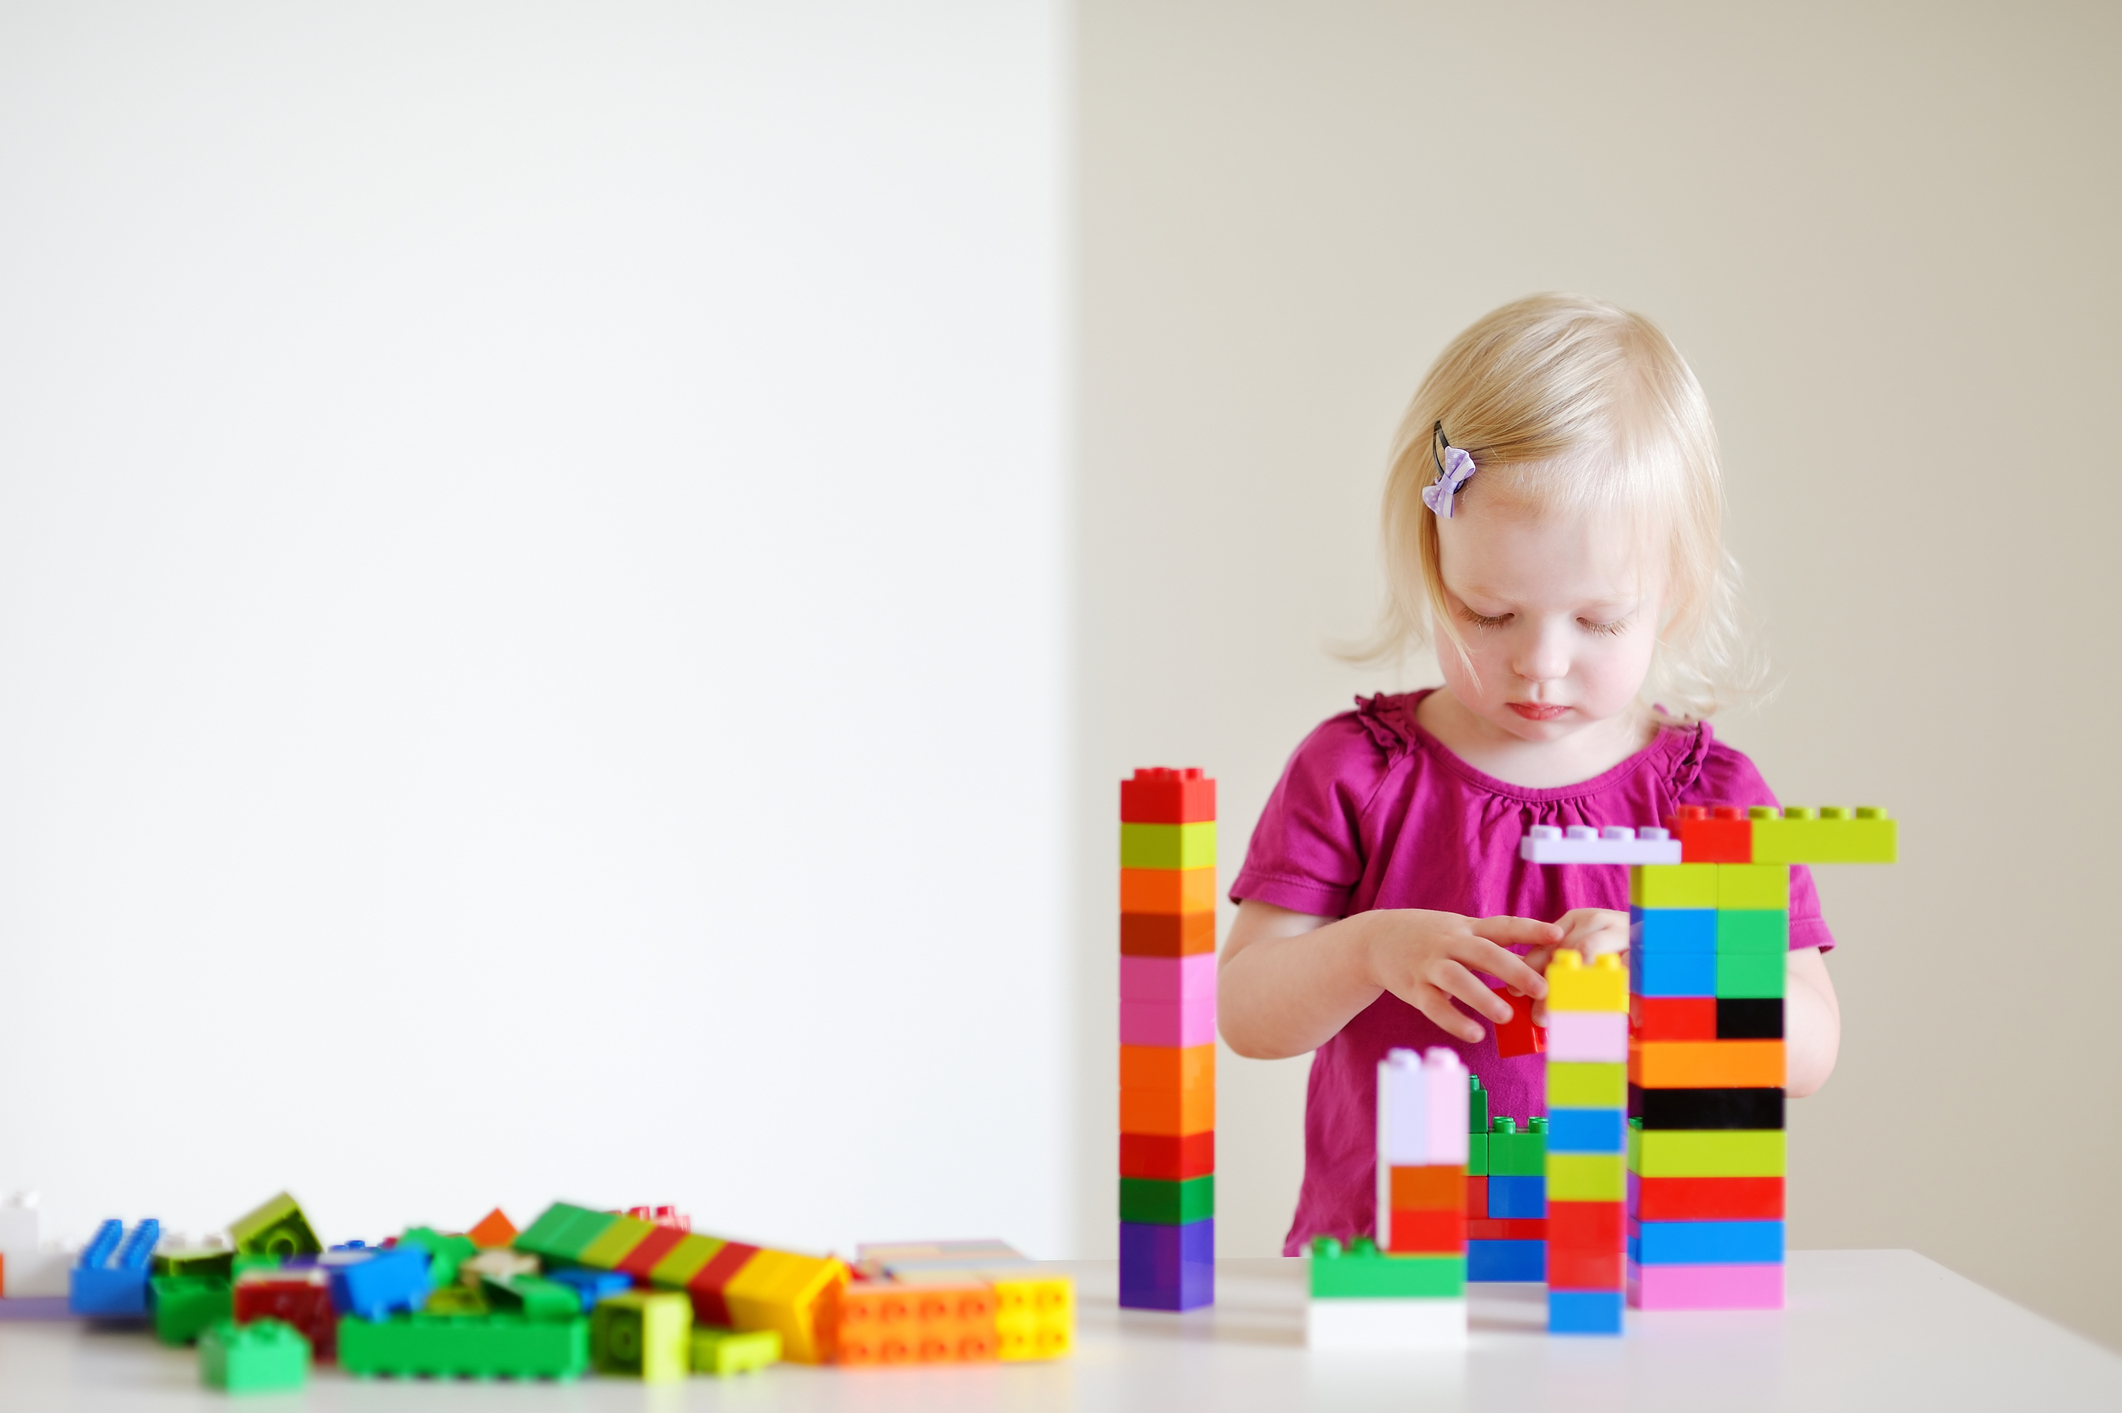 WHAT ACTIVITIES WILL I FIND IN THIS LIST? - ANIMALS & NATUREARTDANCEINFANT DEVELOPMENTSPORTS & PLAYMUSICREADING & LITERACYSCIENCE & MATHEMATICSSWIMMING